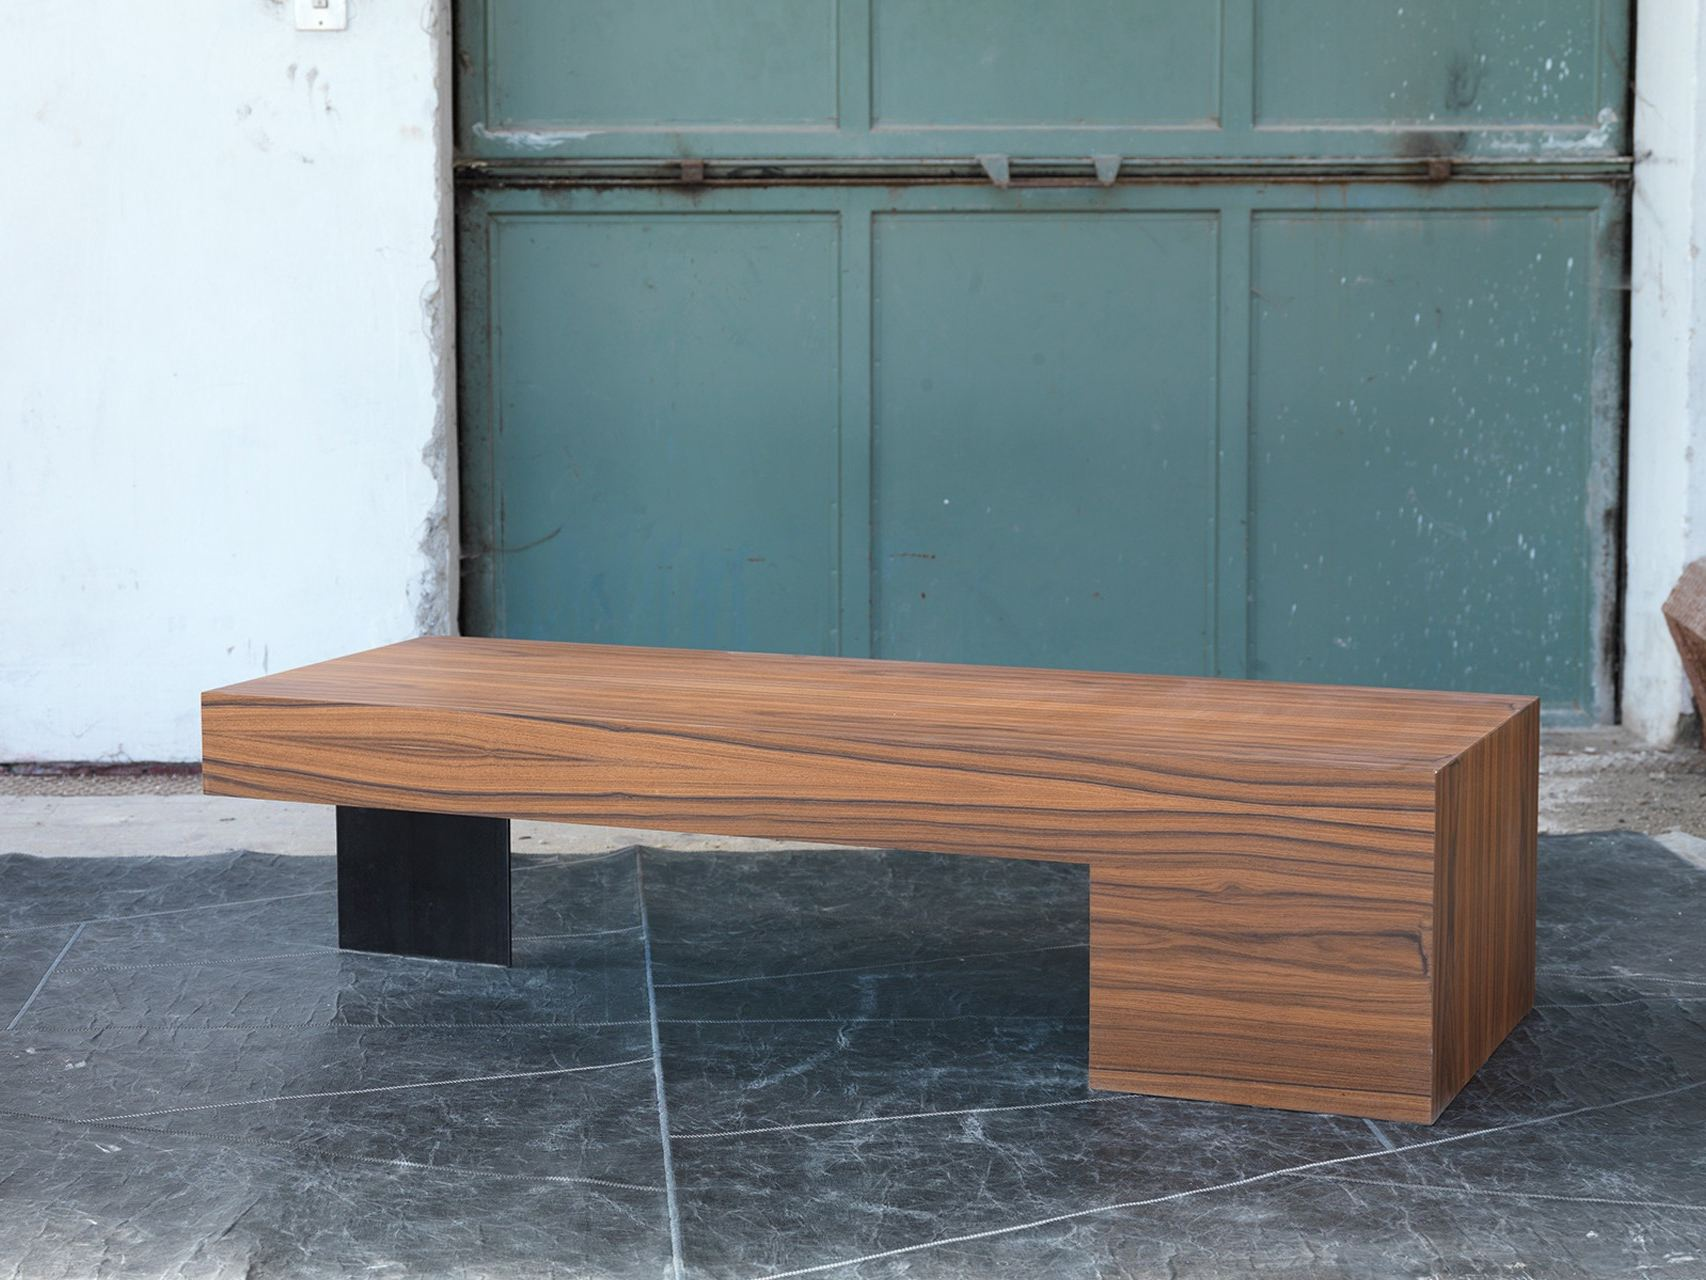 Low Wood Veneer Coffee Table For Living Room Klimuk Tavolini Collection By Domingo Salotti